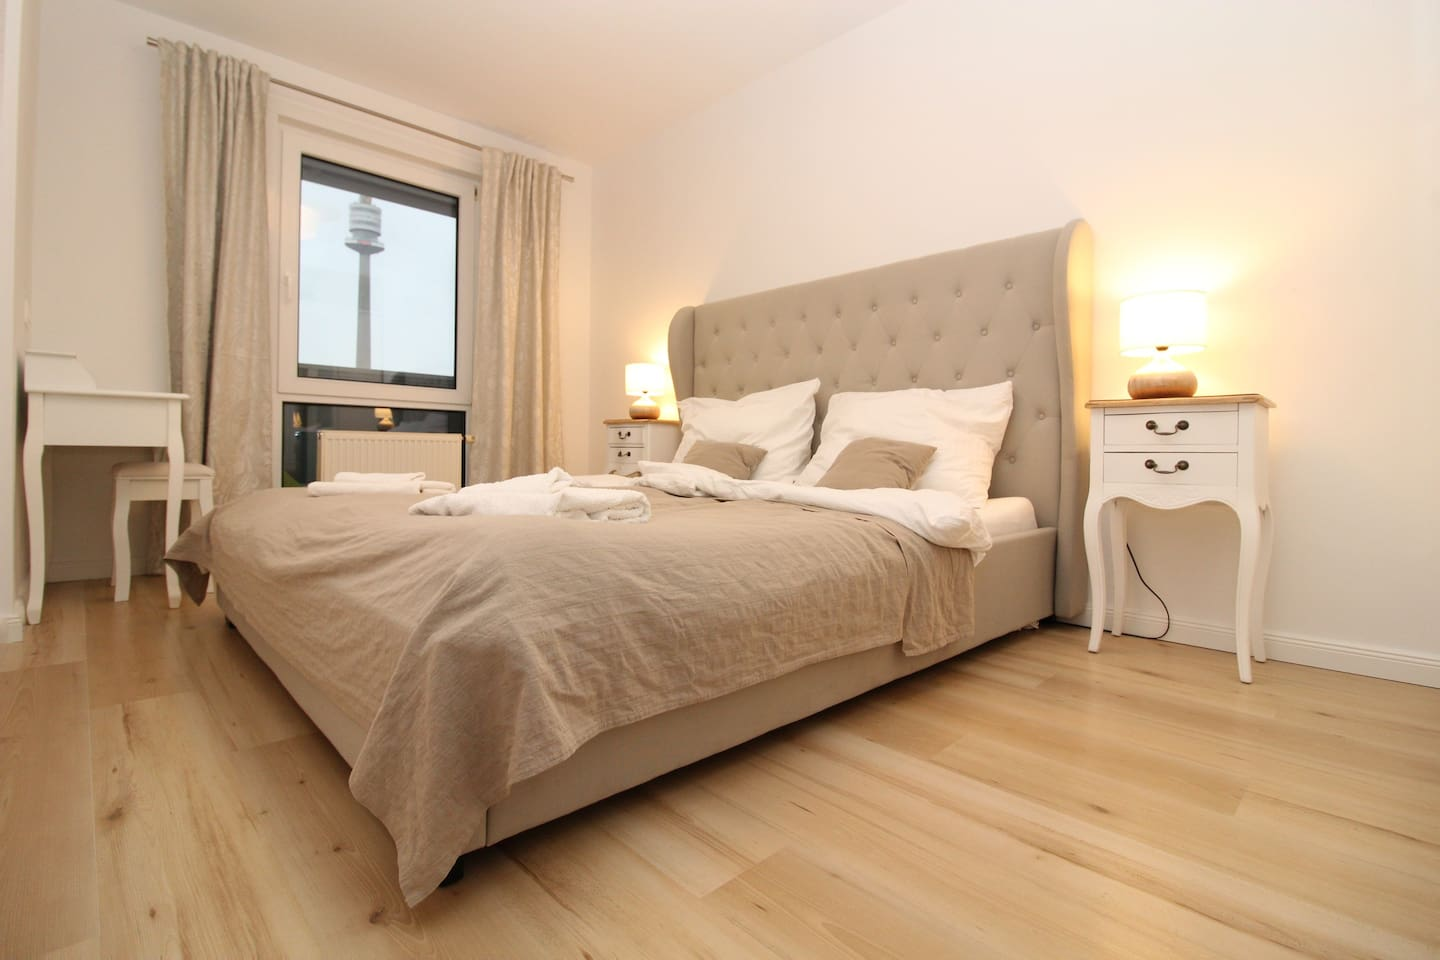 Newly renovated apartment with fantastic view on danube river, park and city